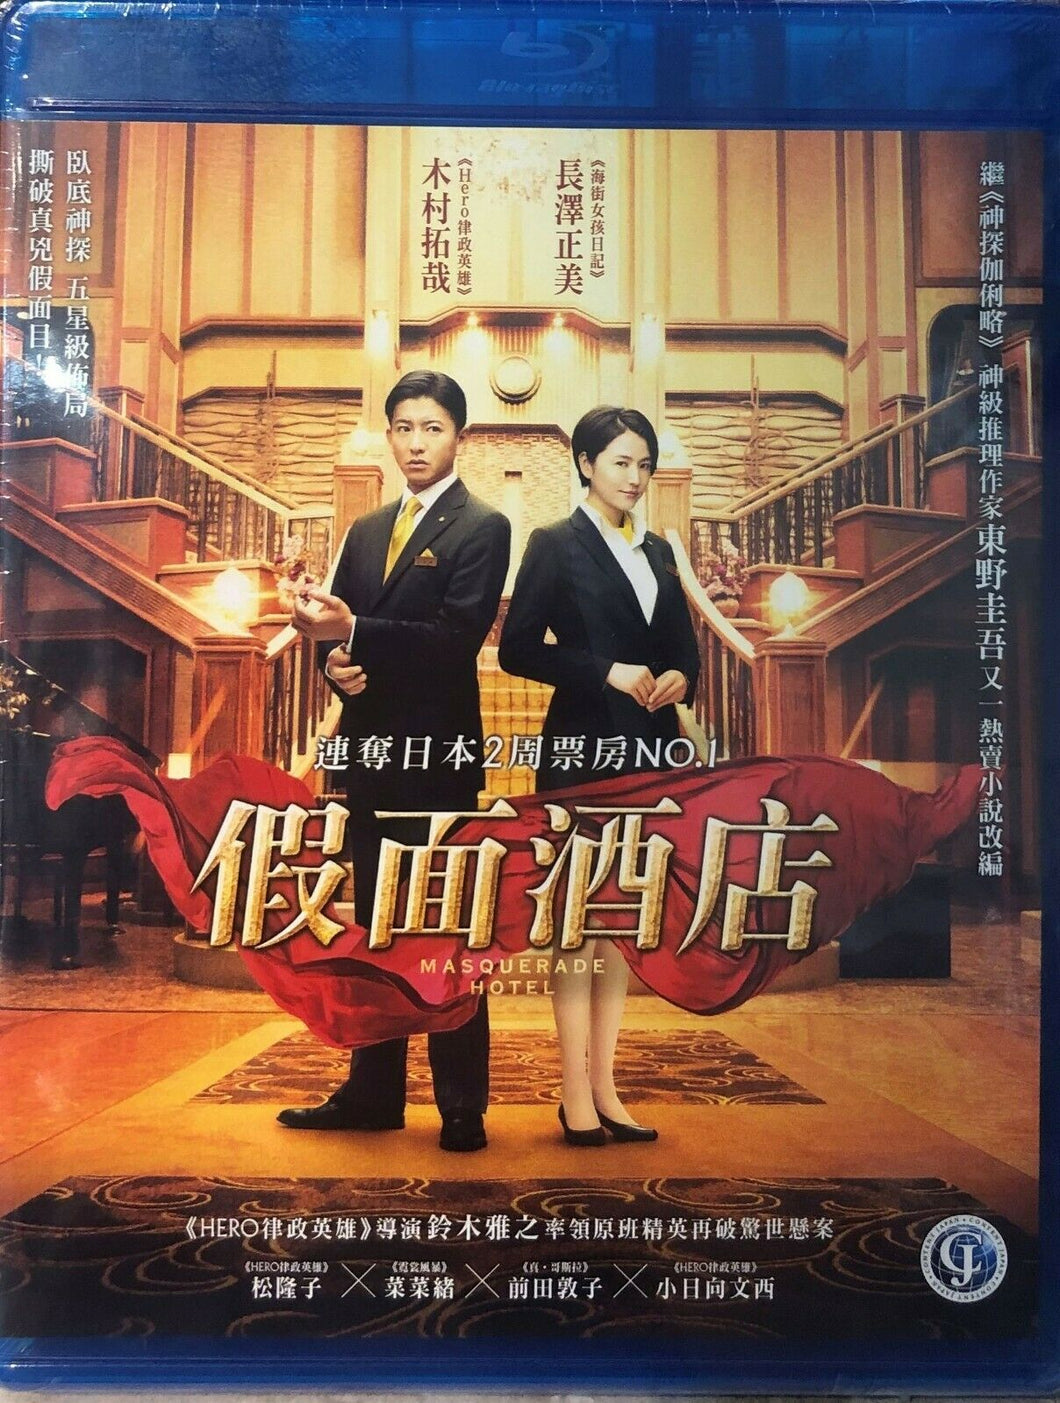 Masquerade 假面酒店 2019 (Japanese Movie) BLU-RAY with English Sub (Region A)